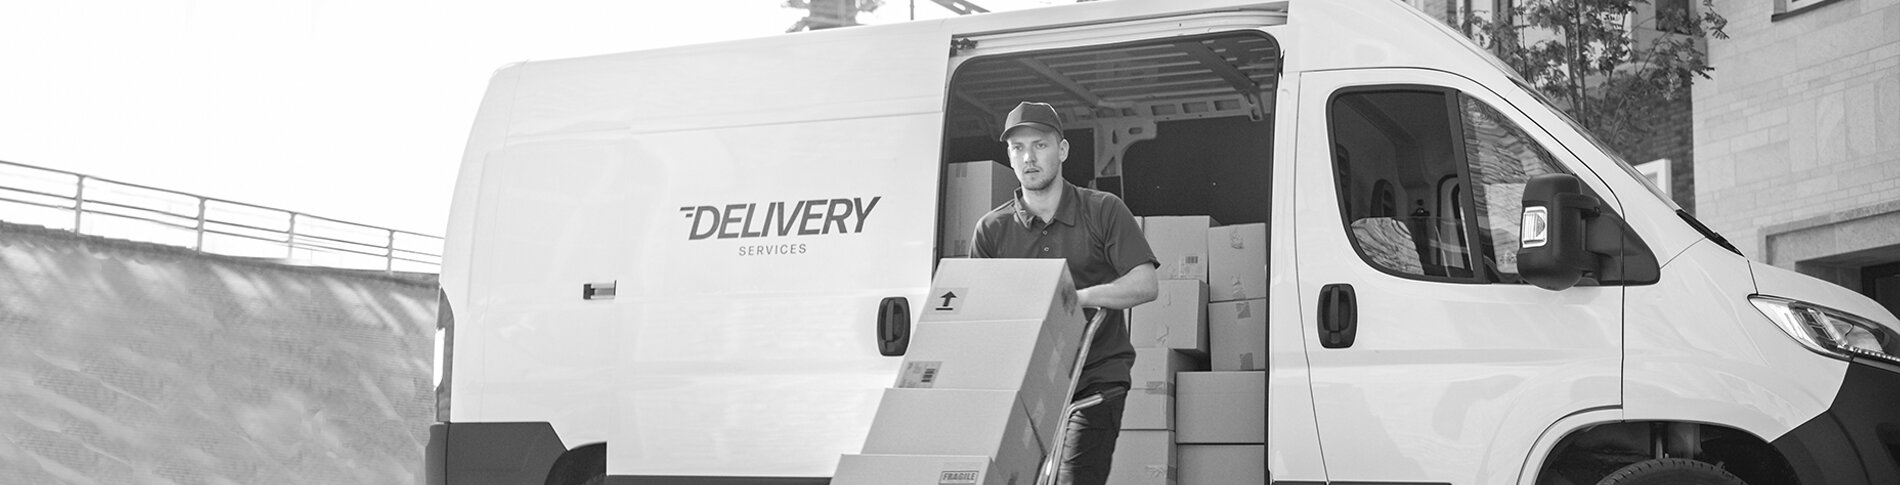 DualCam Solution For Delivery Services